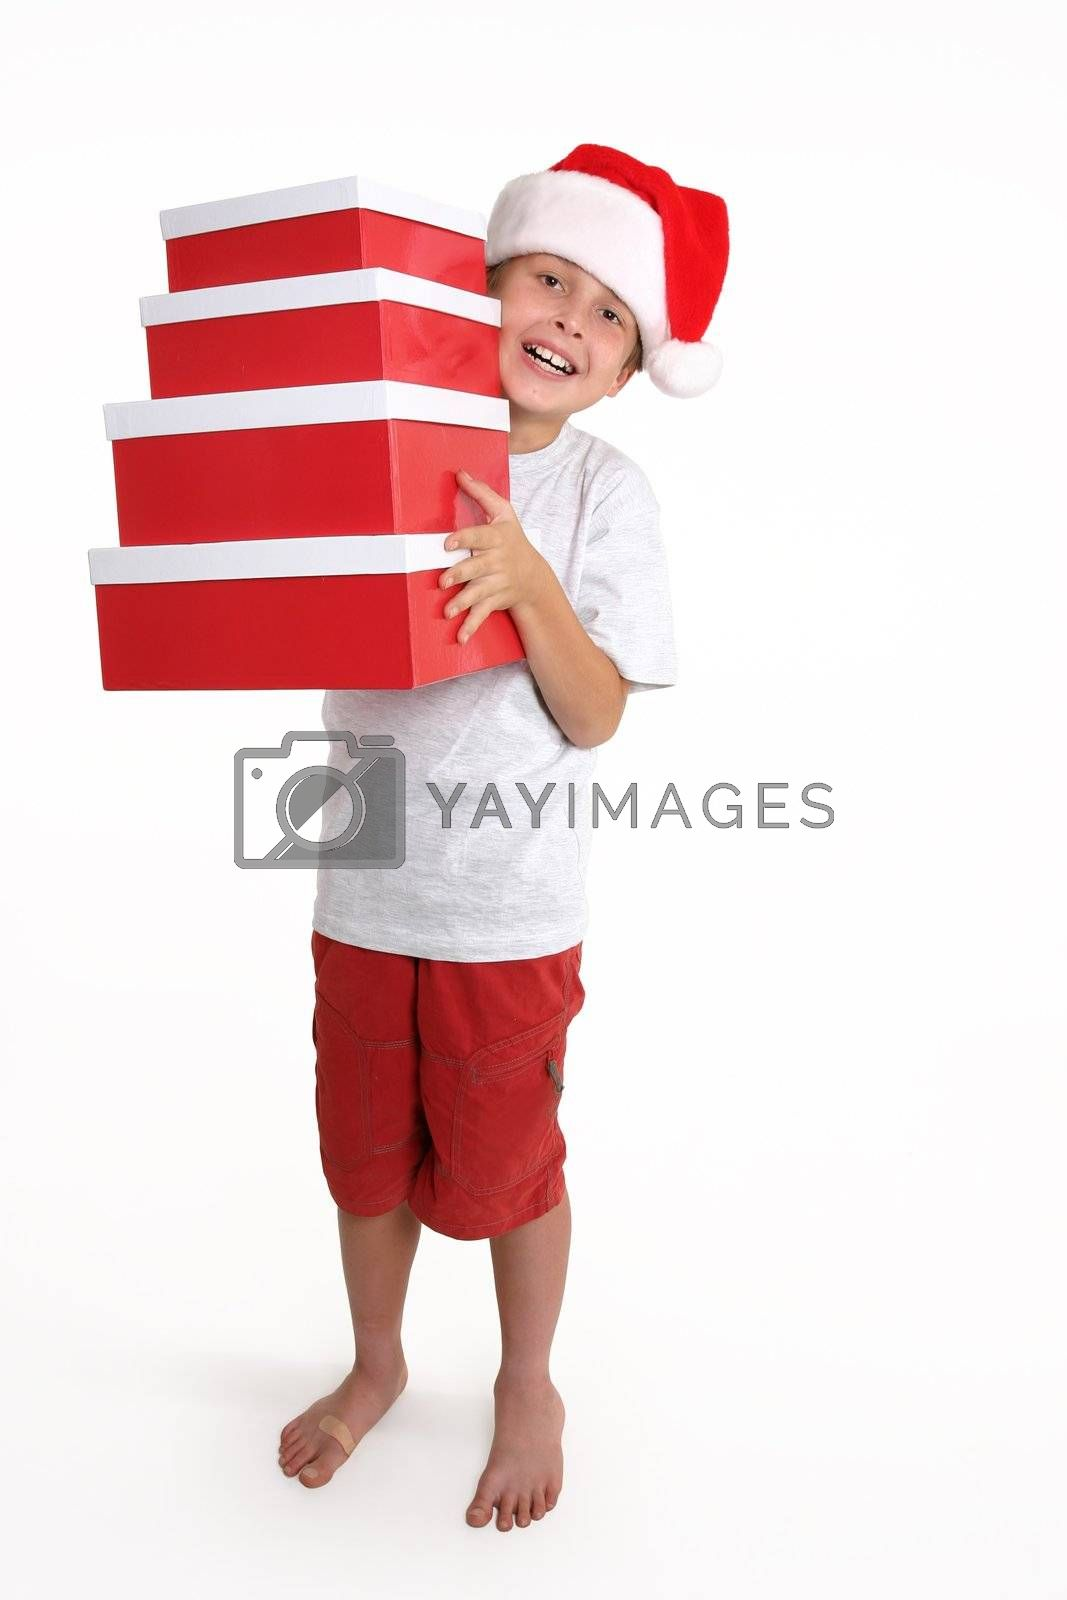 Child holding a stack of gift boxes by lovleah